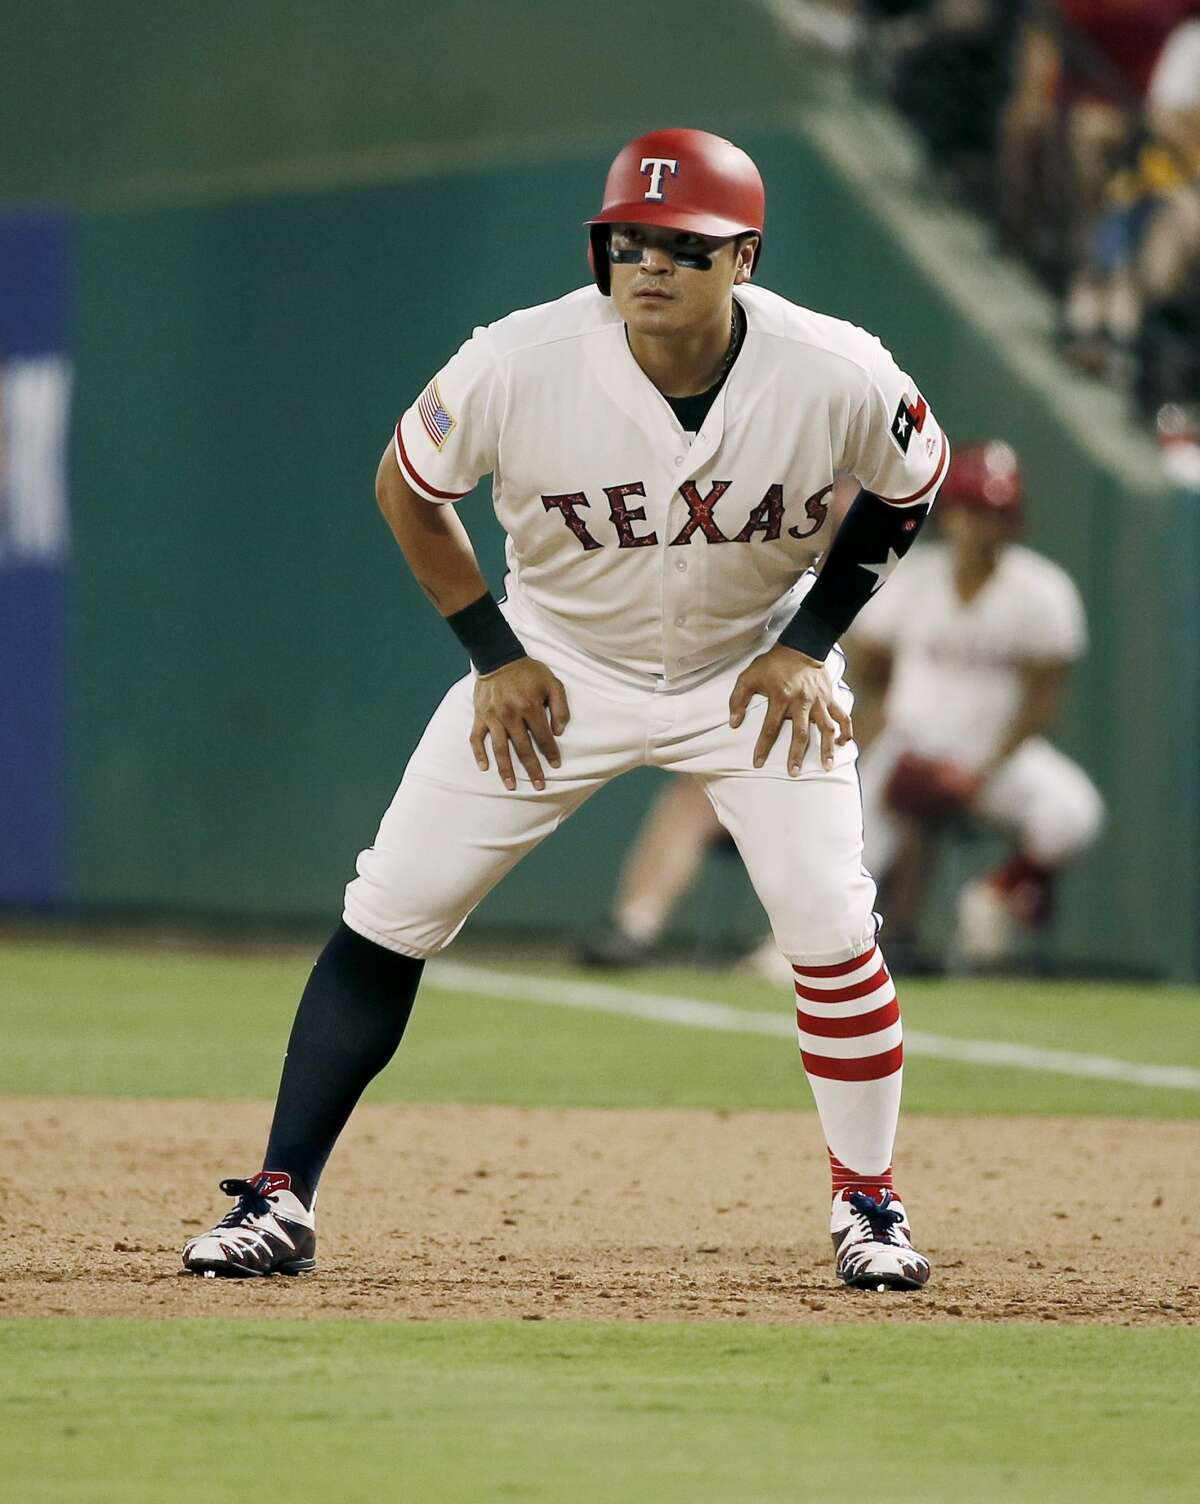 Texas Rangers' Shin-Soo Choo (17) leads off of first during the fifth inning of a baseball game against the Houston Astros, Tuesday, July 3, 2018, in Arlington, Texas. Houston won 5-3. (AP Photo/Brandon Wade)